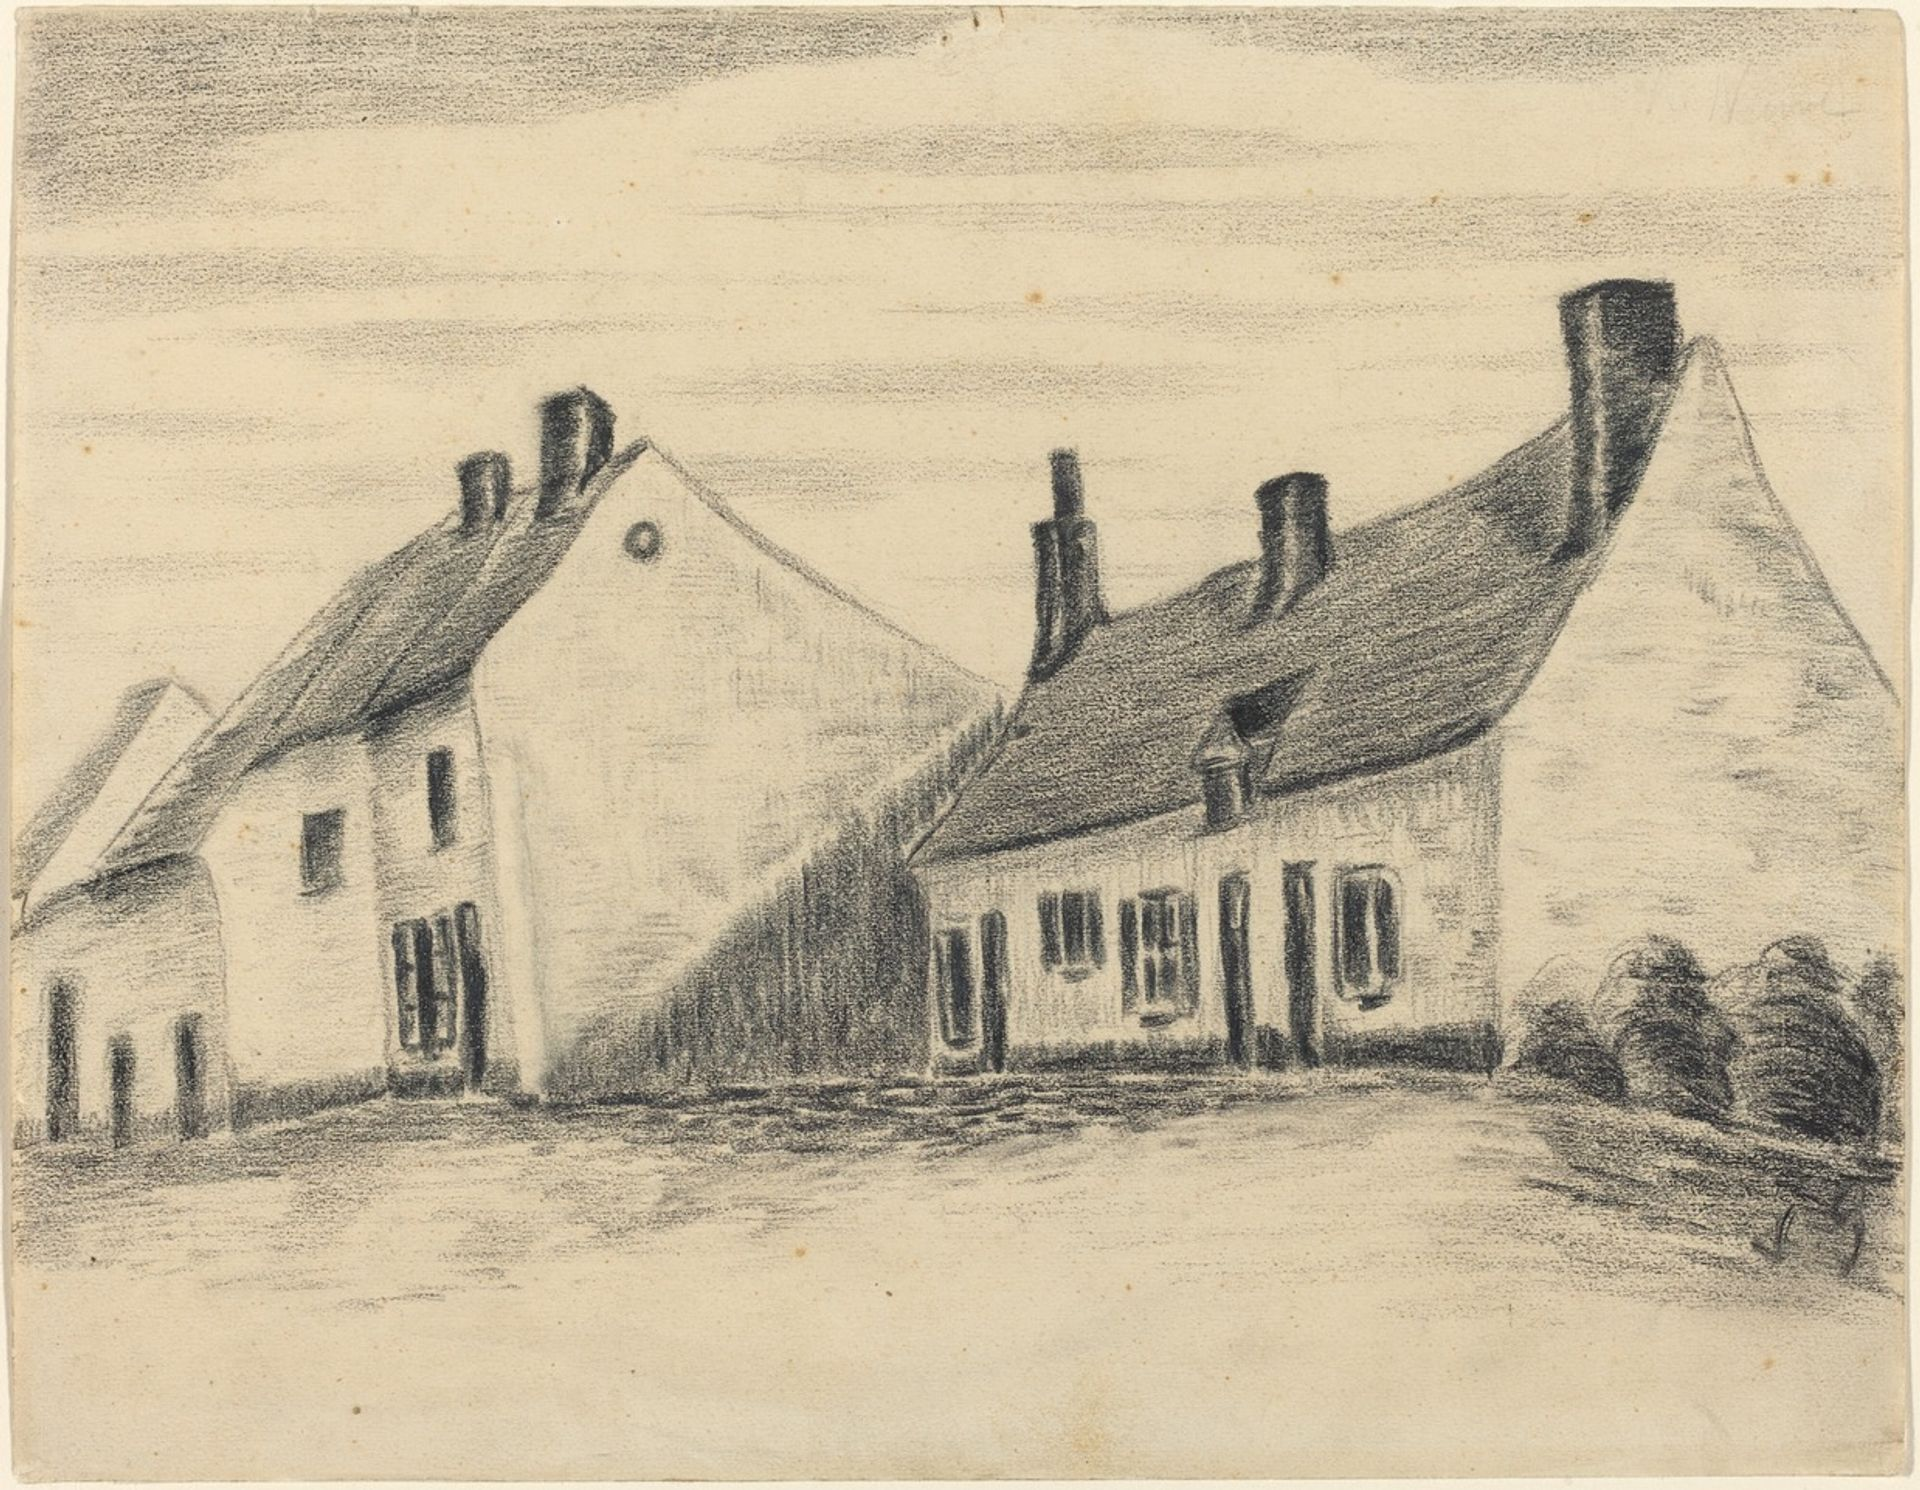 Vincent van Gogh (here attributed), The Zandmennik House Courtesy of the National Gallery of Art, Washington, DC (Armand Hammer Collection)